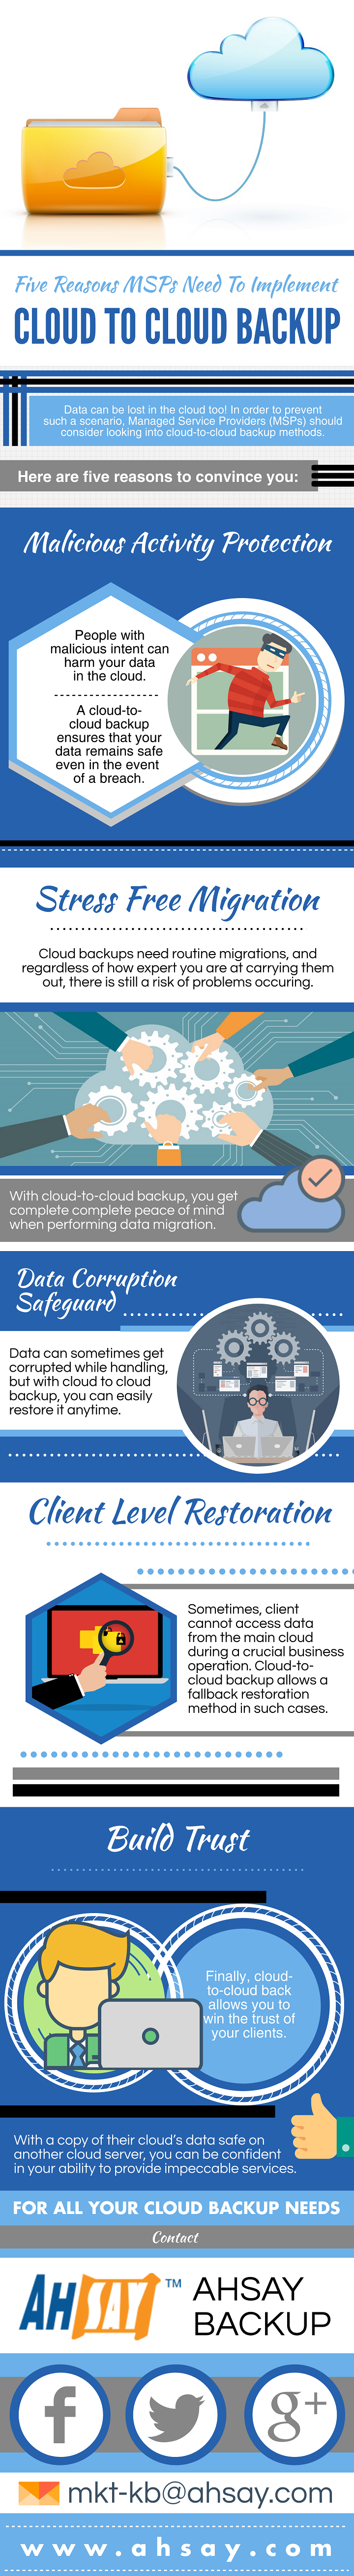 5-reasons-msps-need-cloud-to-cloud-backup